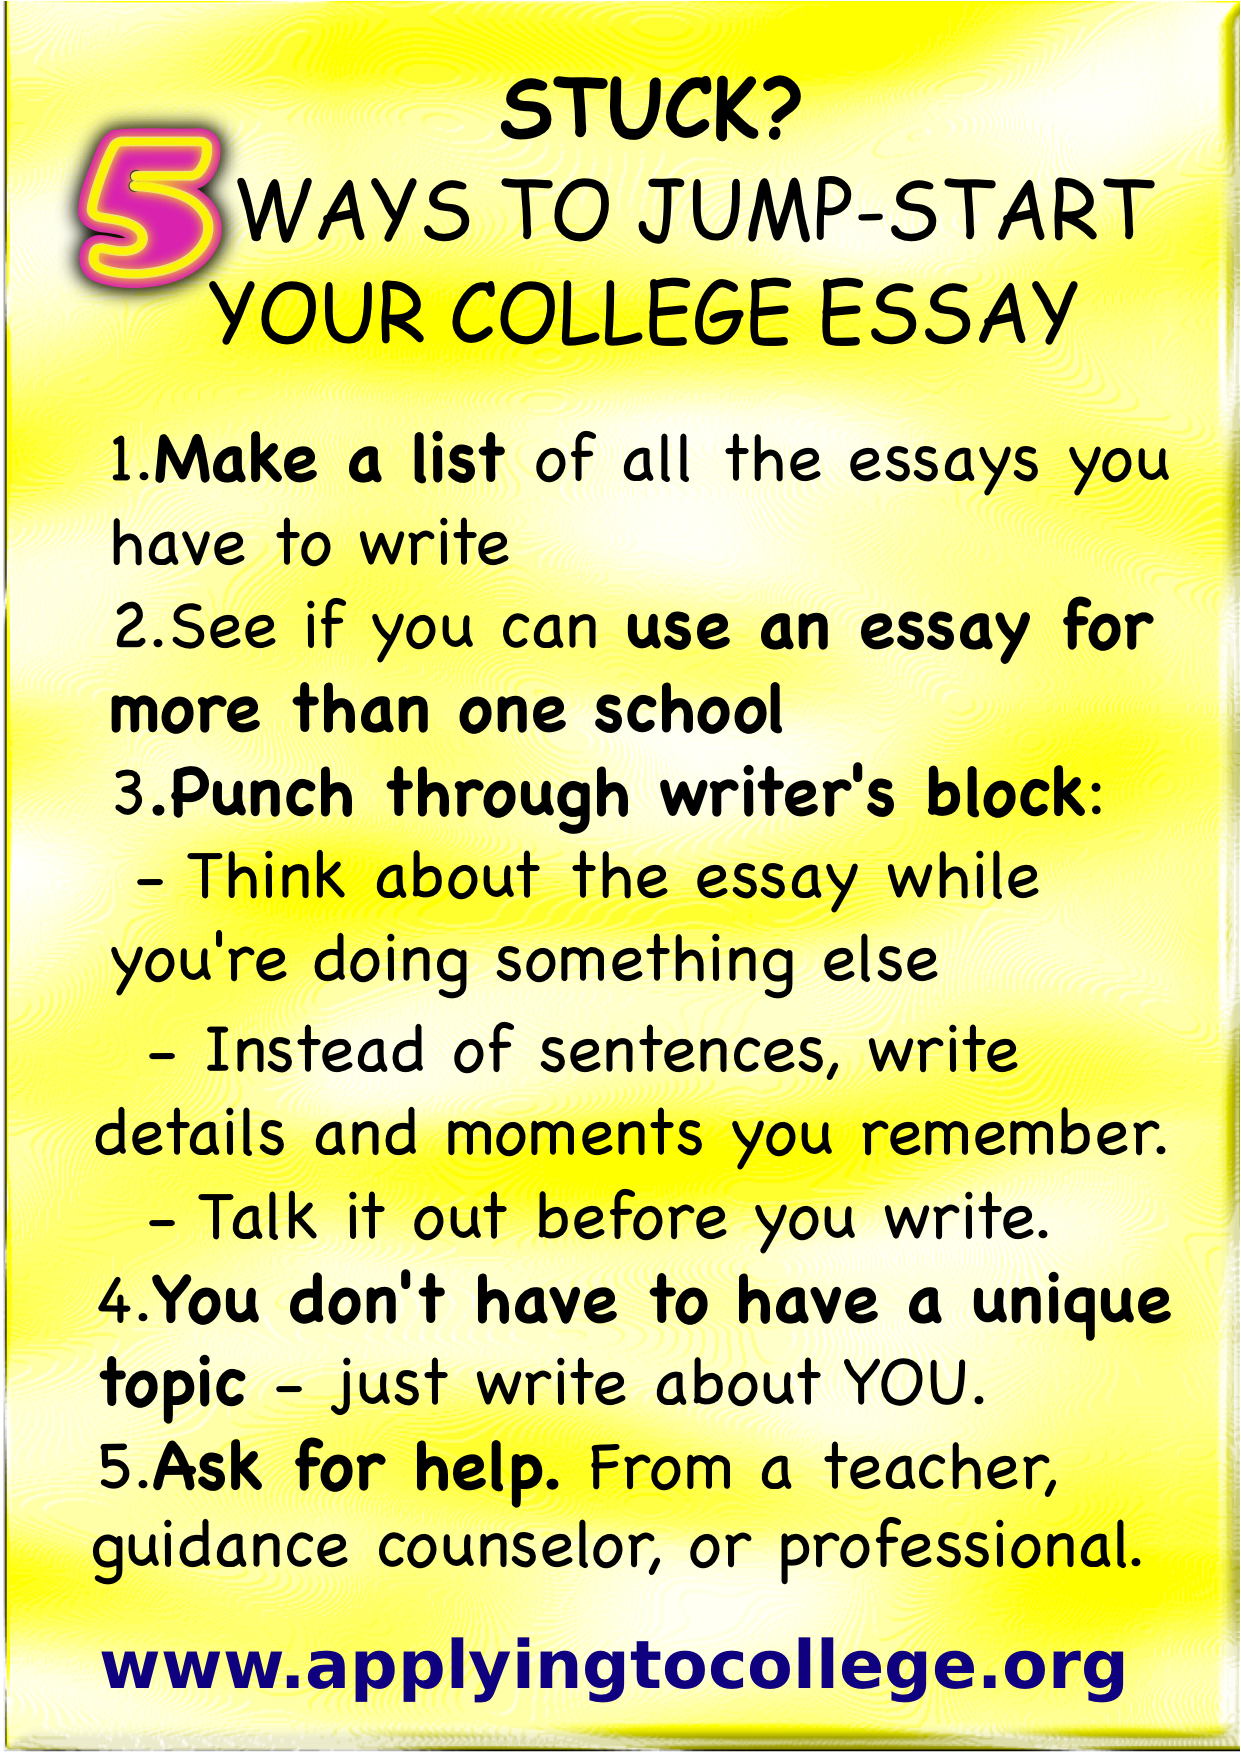 How to write a good essay in college